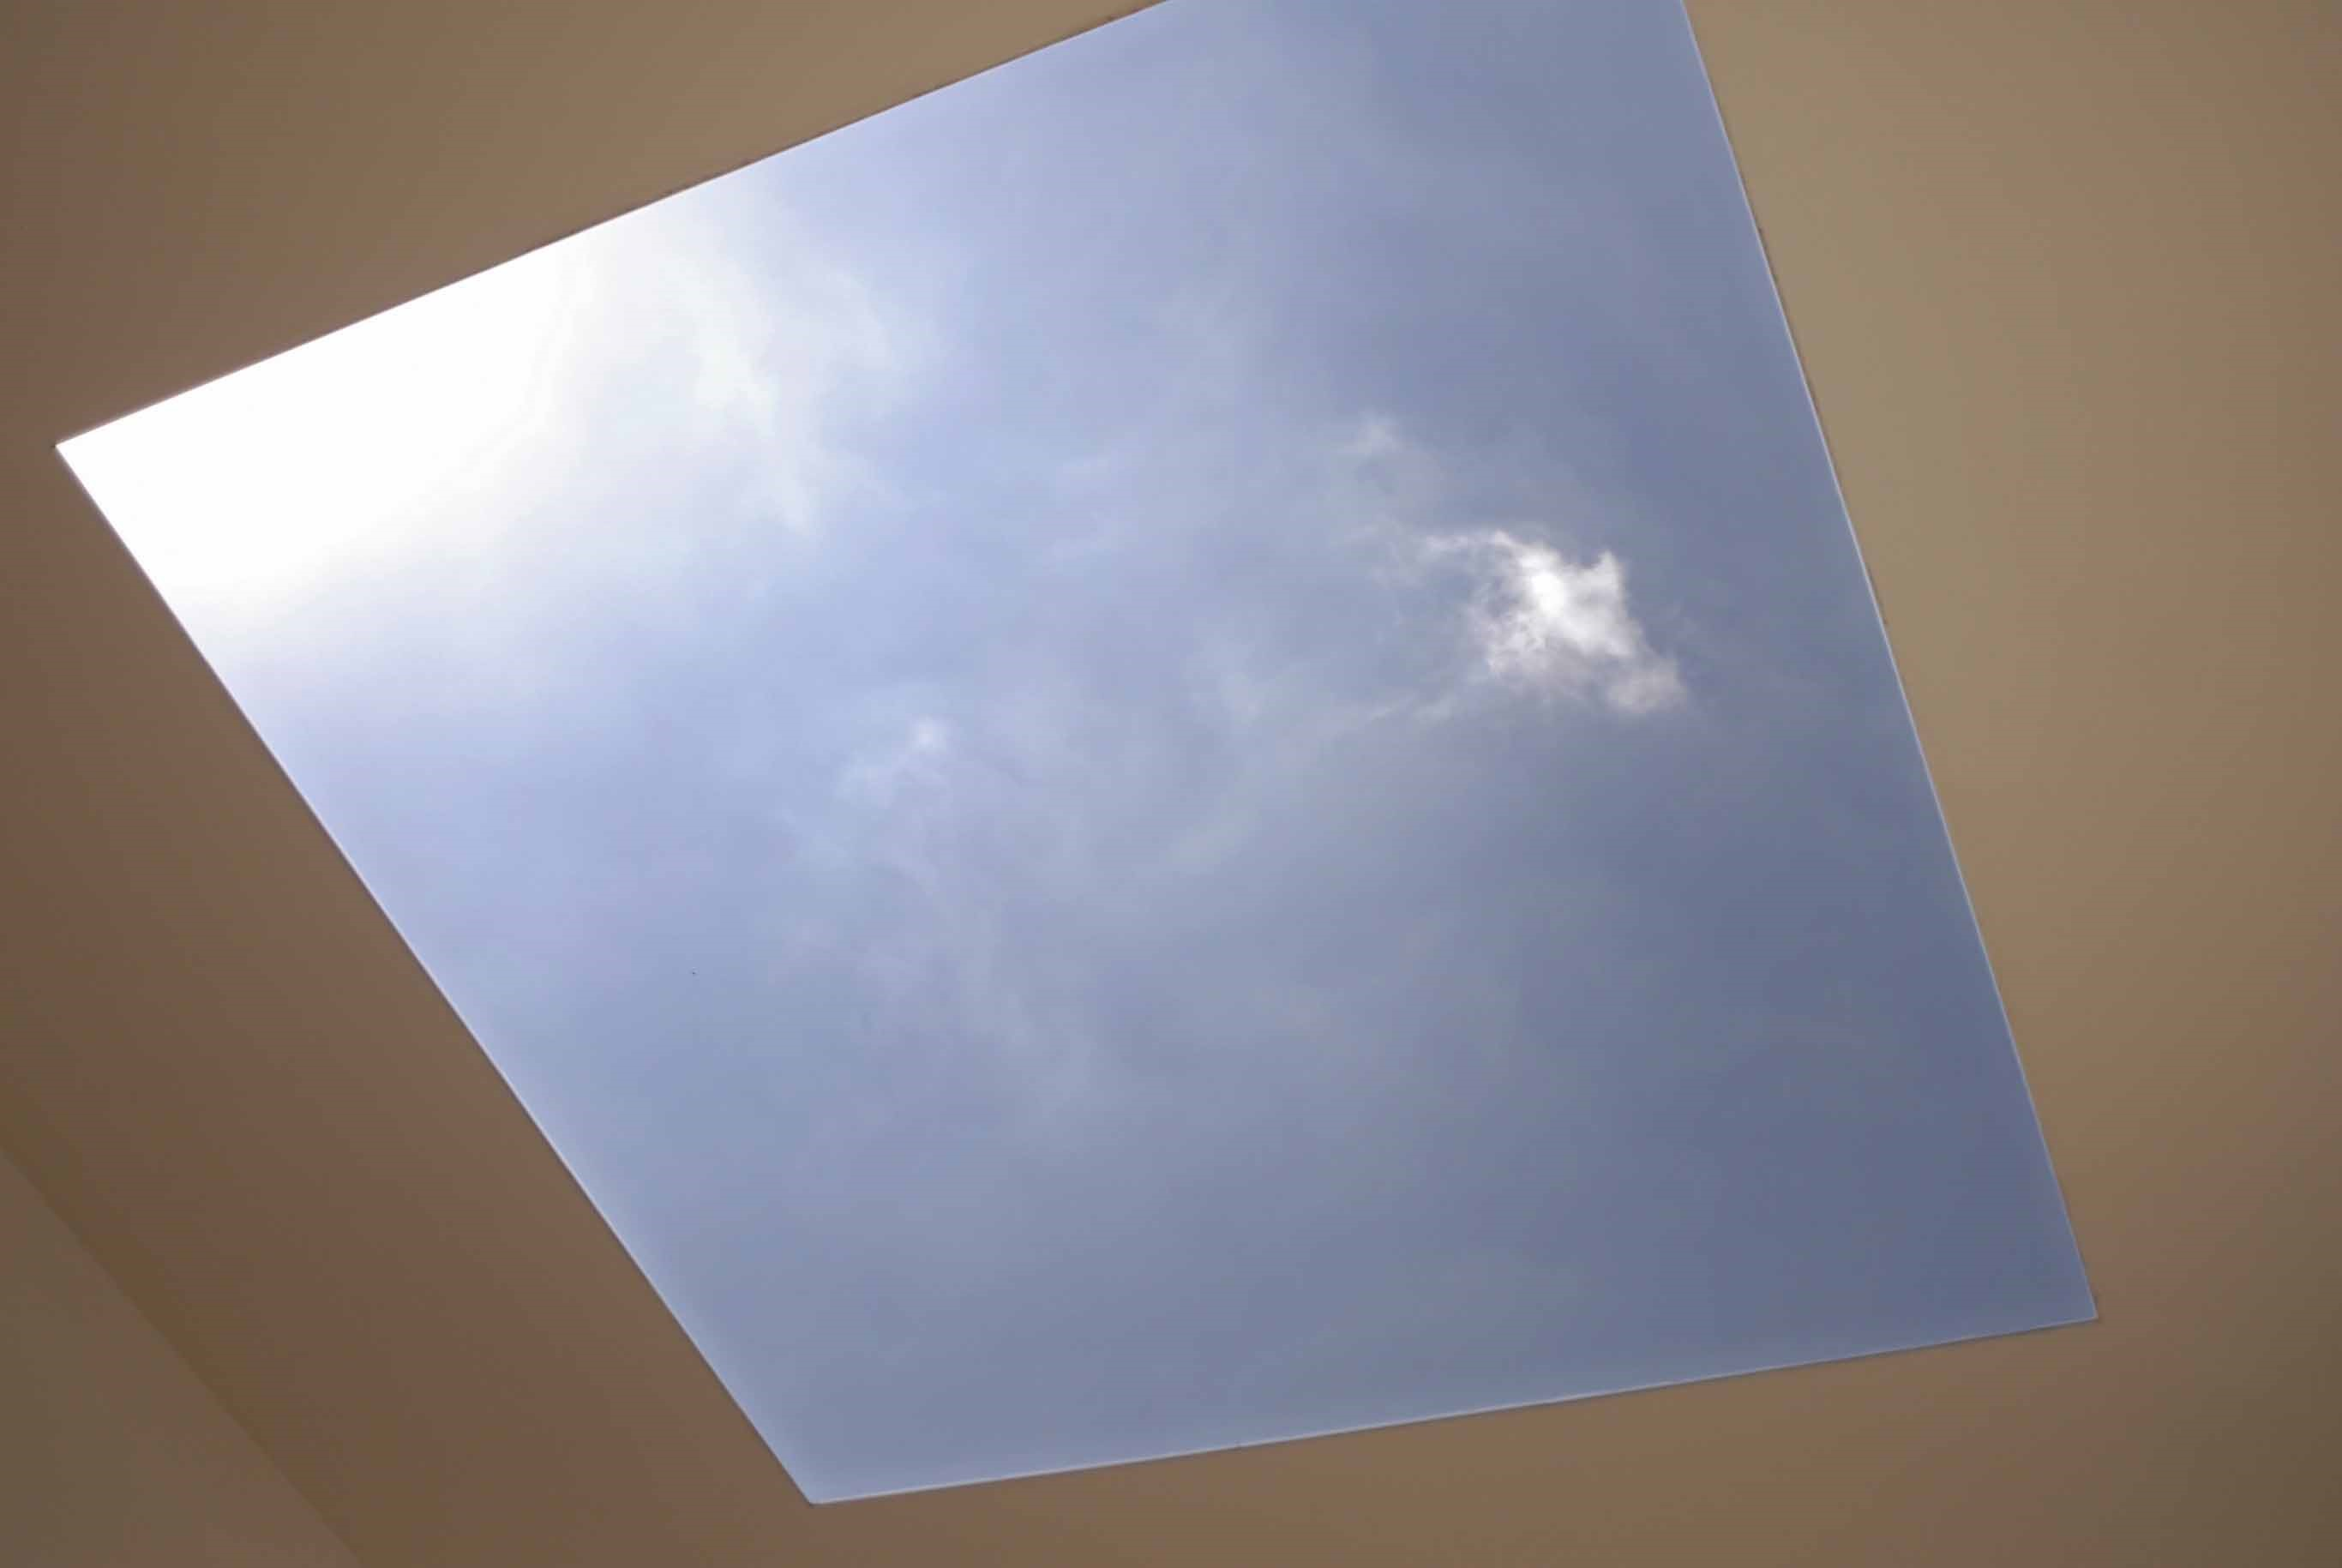 a view from a rooflight as seen from below